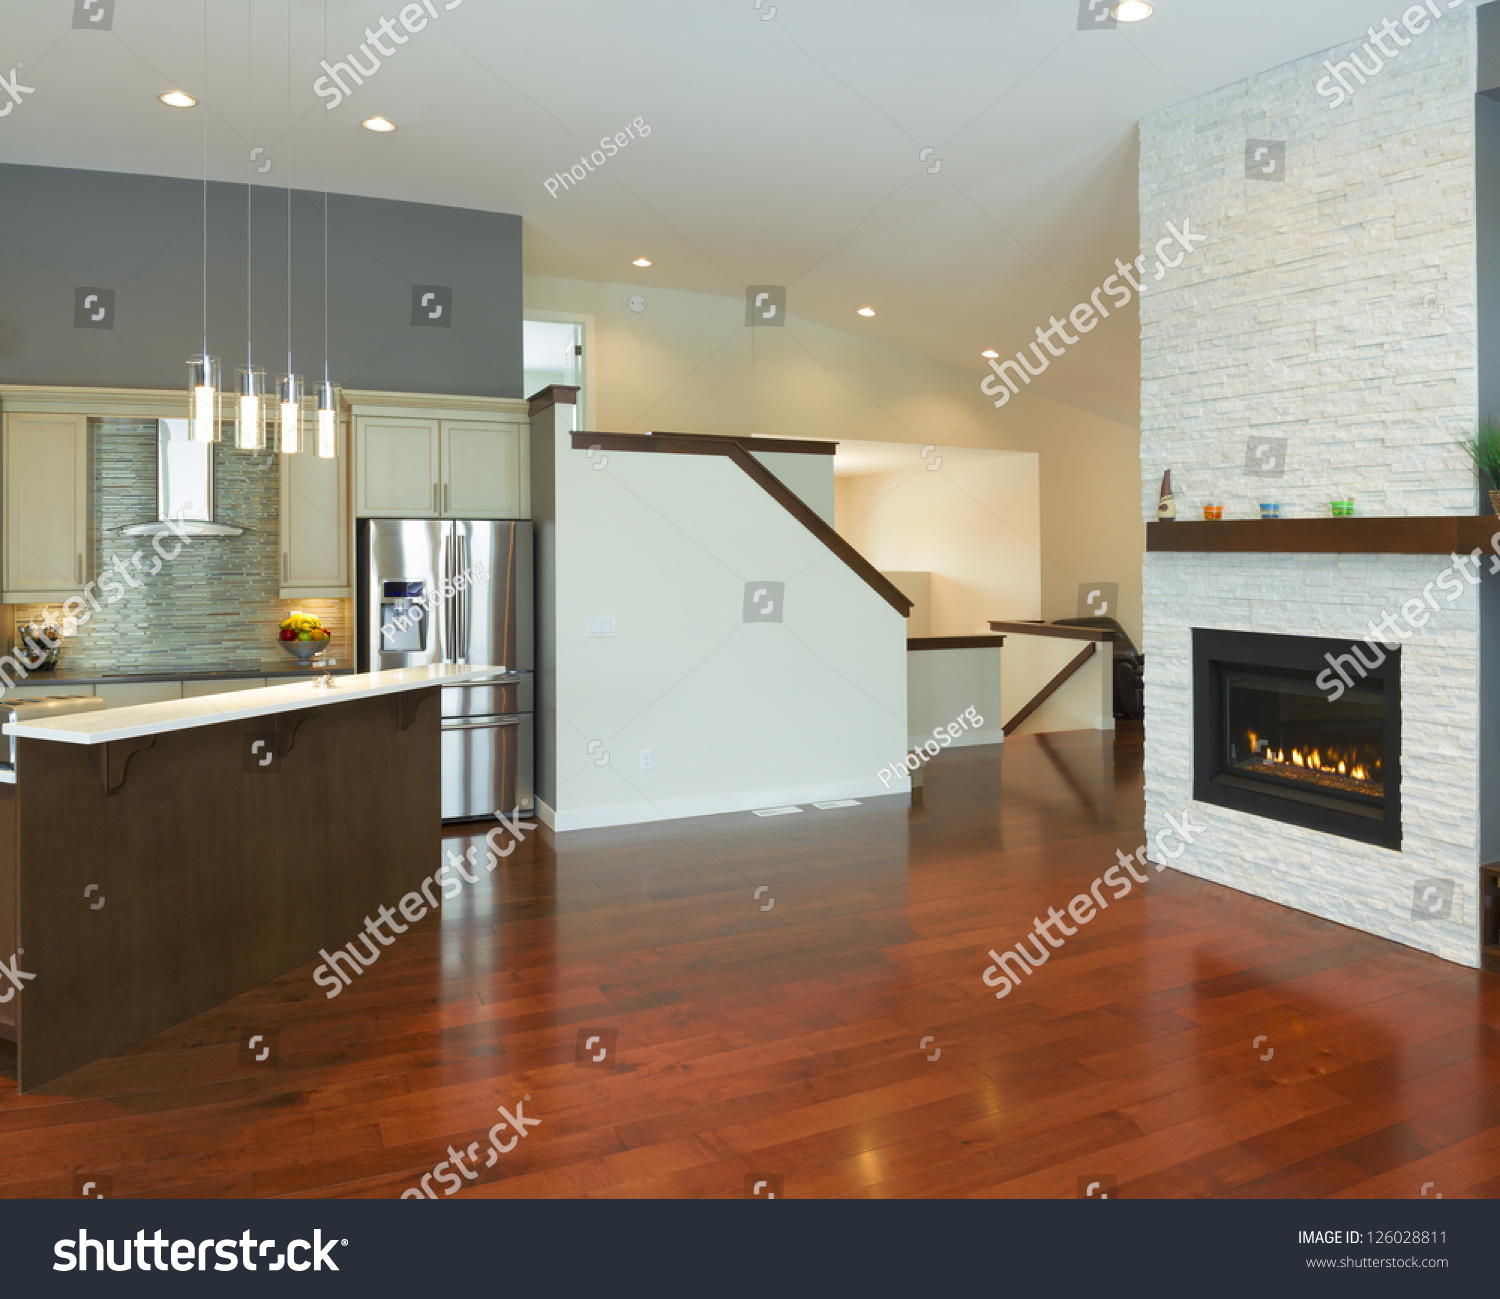 New House Kitchen Designs Interior Kitchen Design With Fireplace In A New House Stock Photo